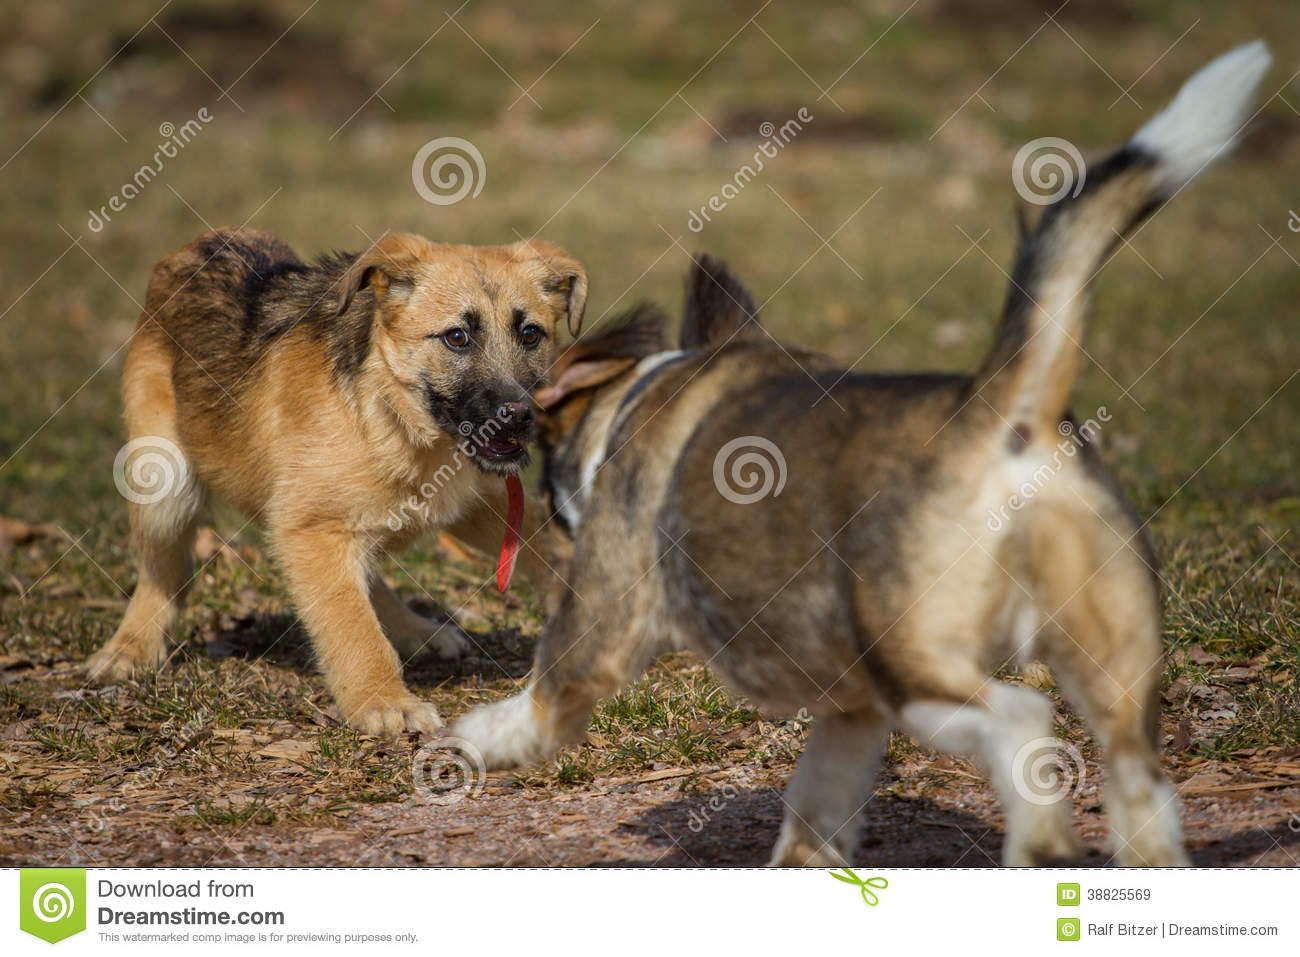 Dachshund German Shepherd Mix Puppies A a german shepherd puppy